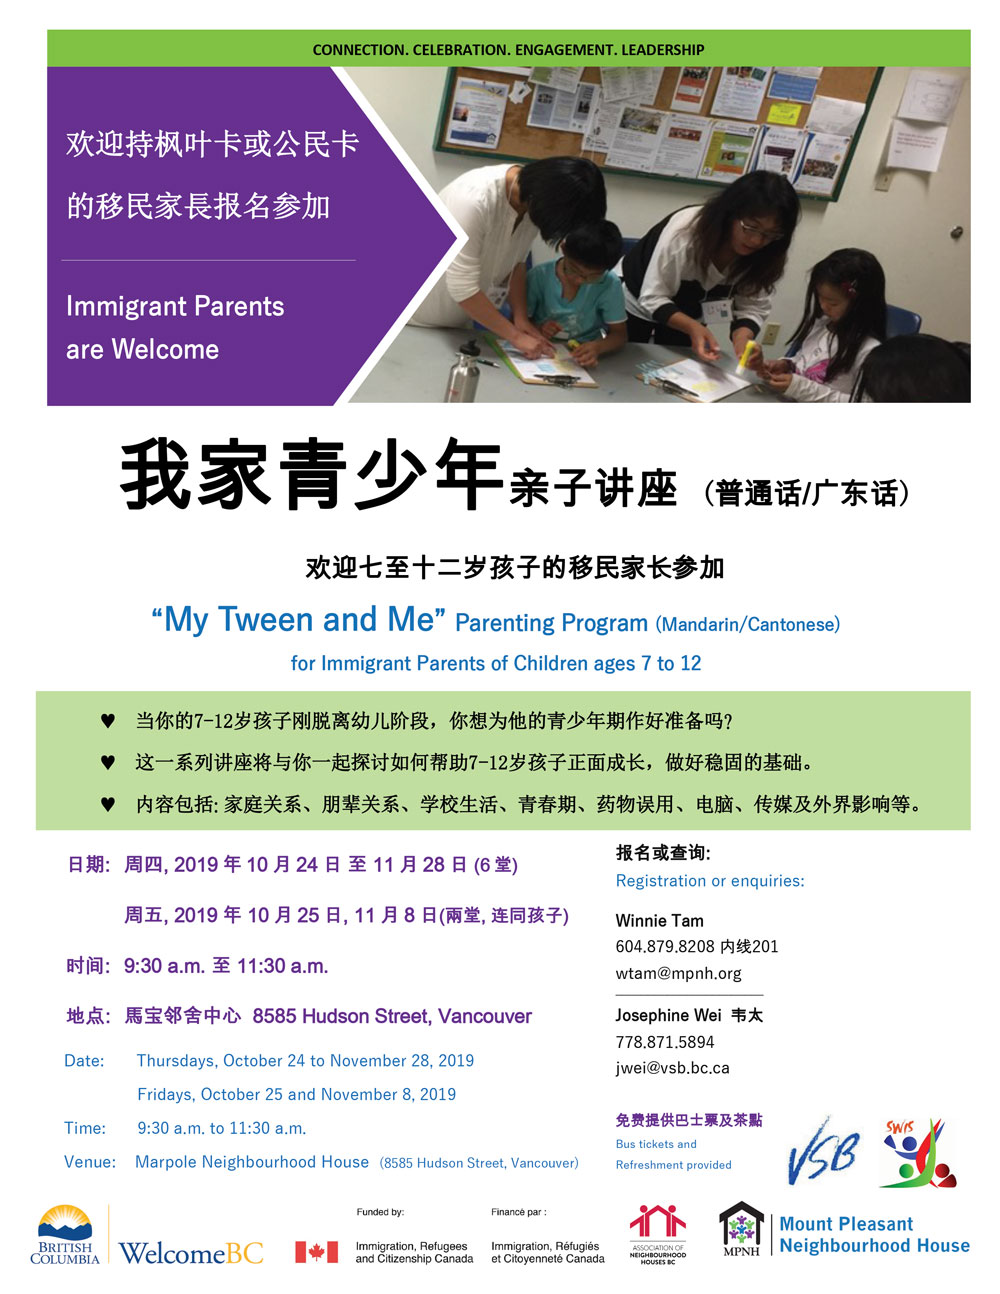 An image of the poster with program details, featuring a photo of two adults doing an activity around a table with young people.